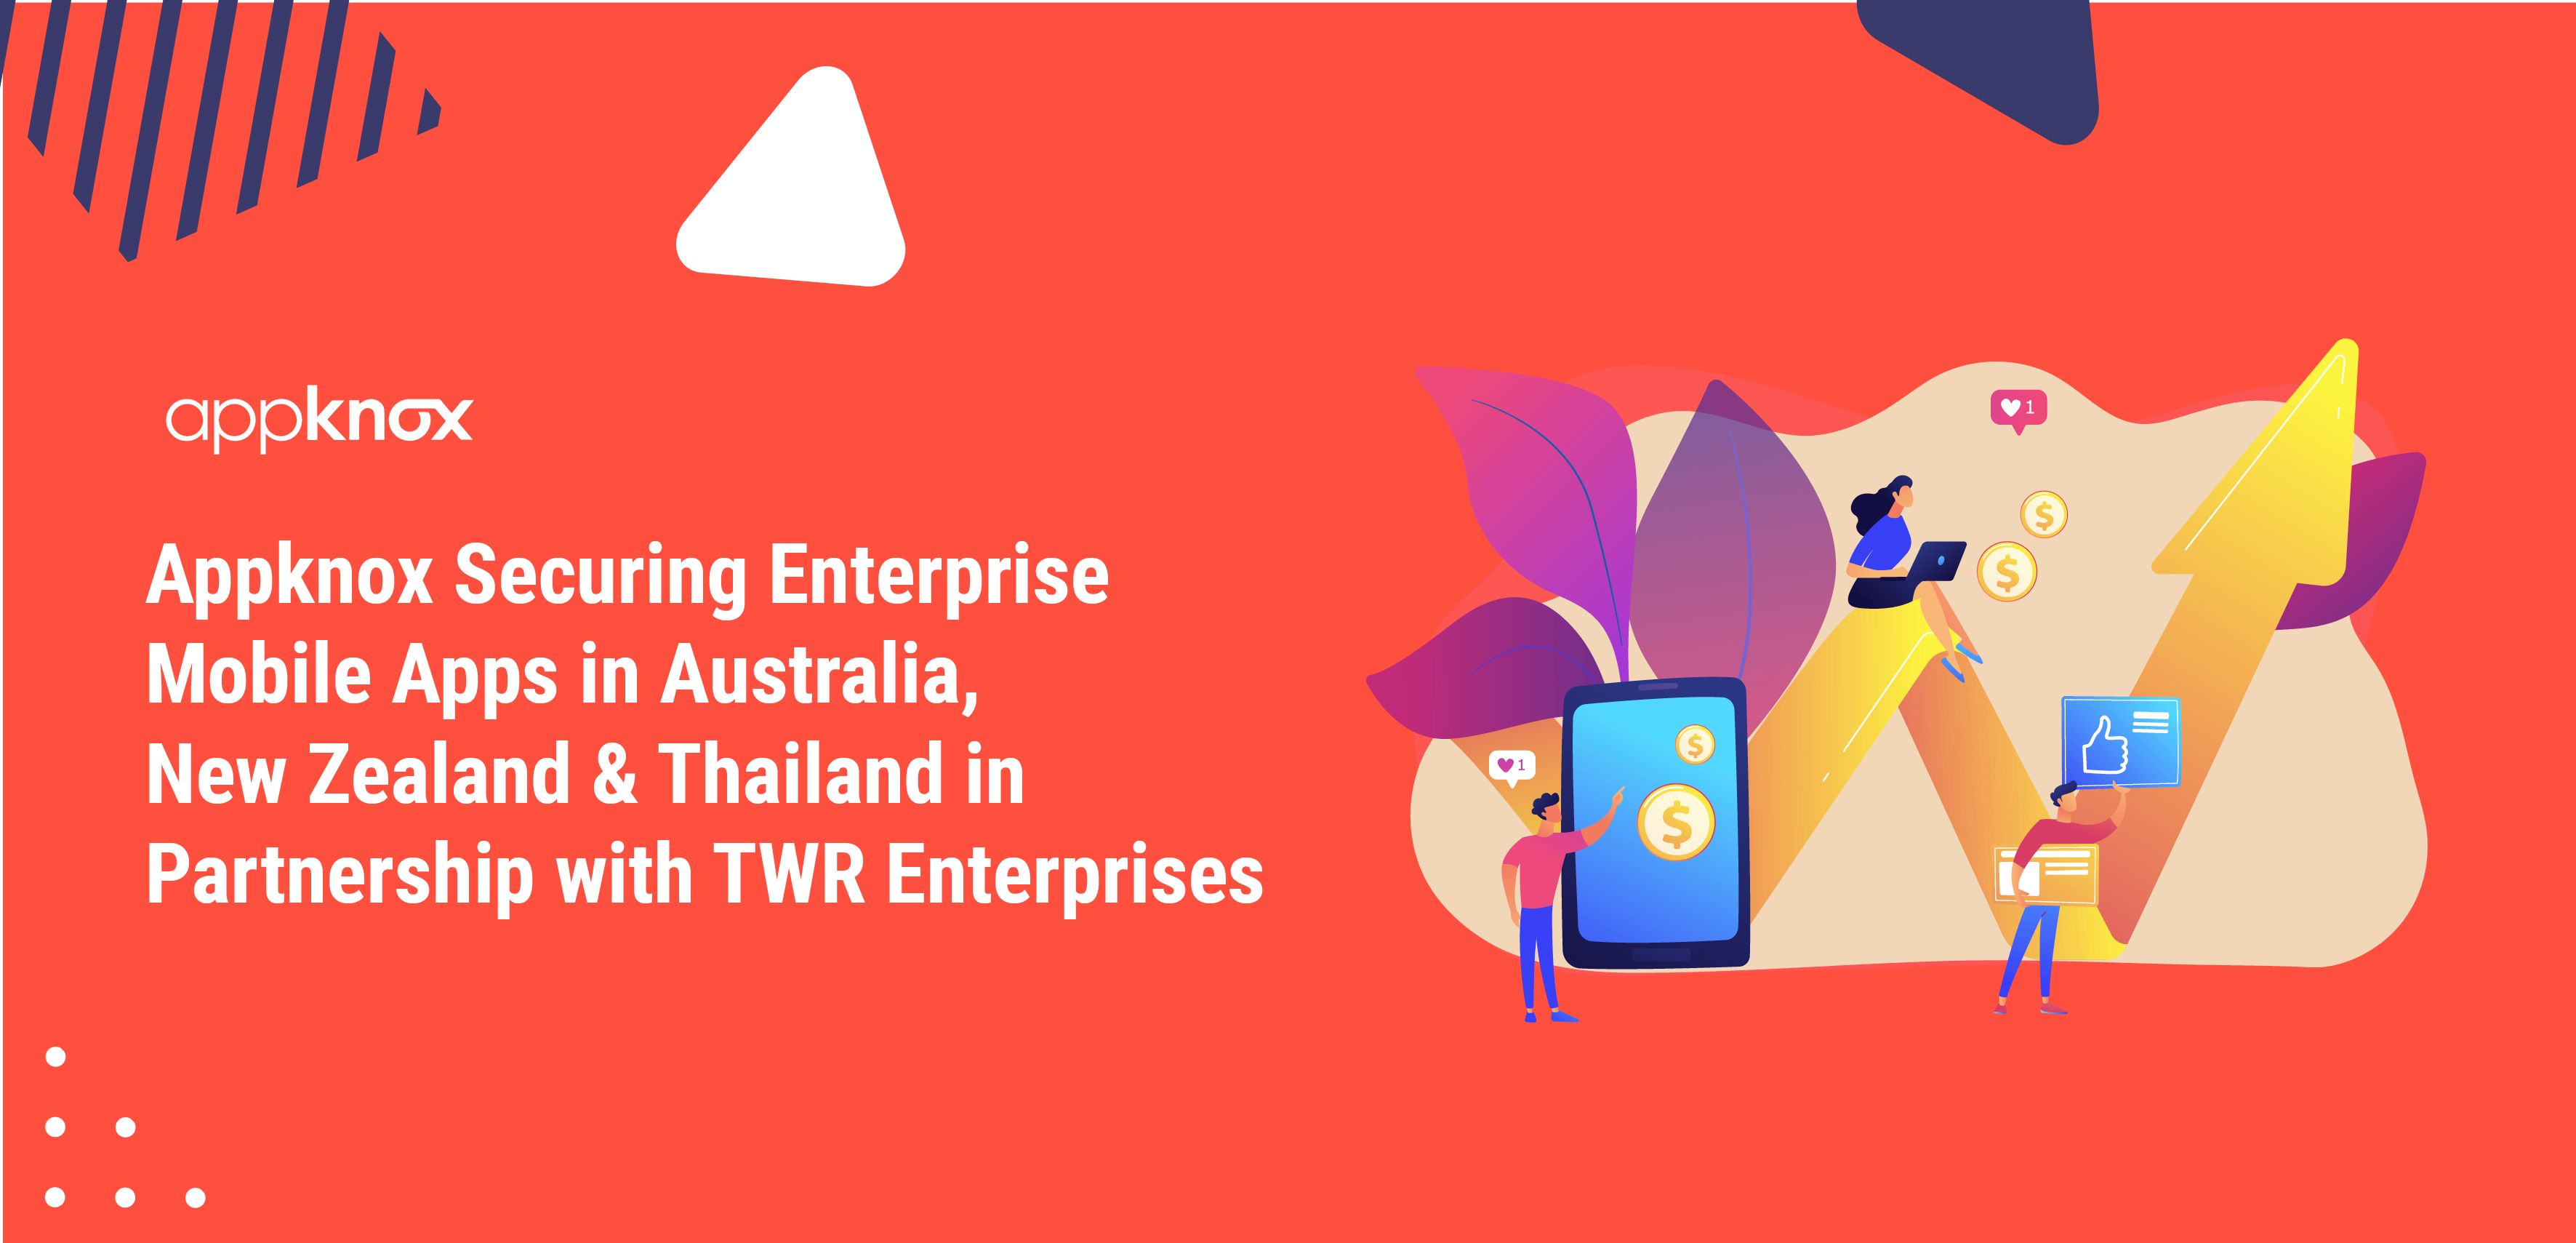 Appknox Securing Enterprise Mobile Apps in Australia, New Zealand & Thailand in Partnership with TWR Enterprises